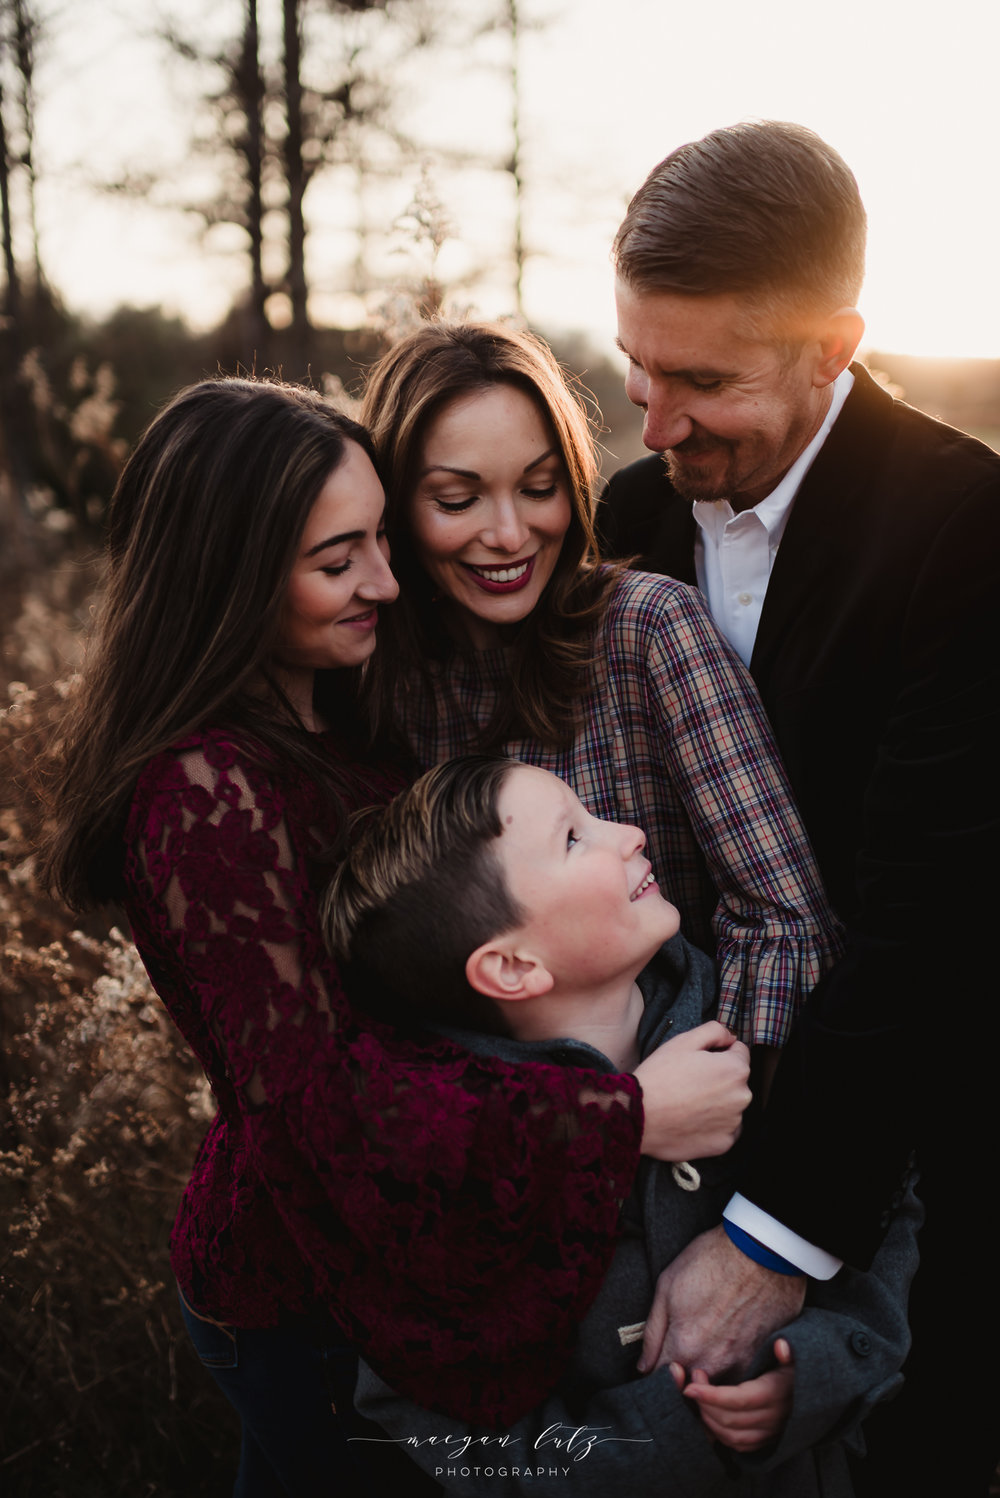 Scranton Family photographer in NEPA